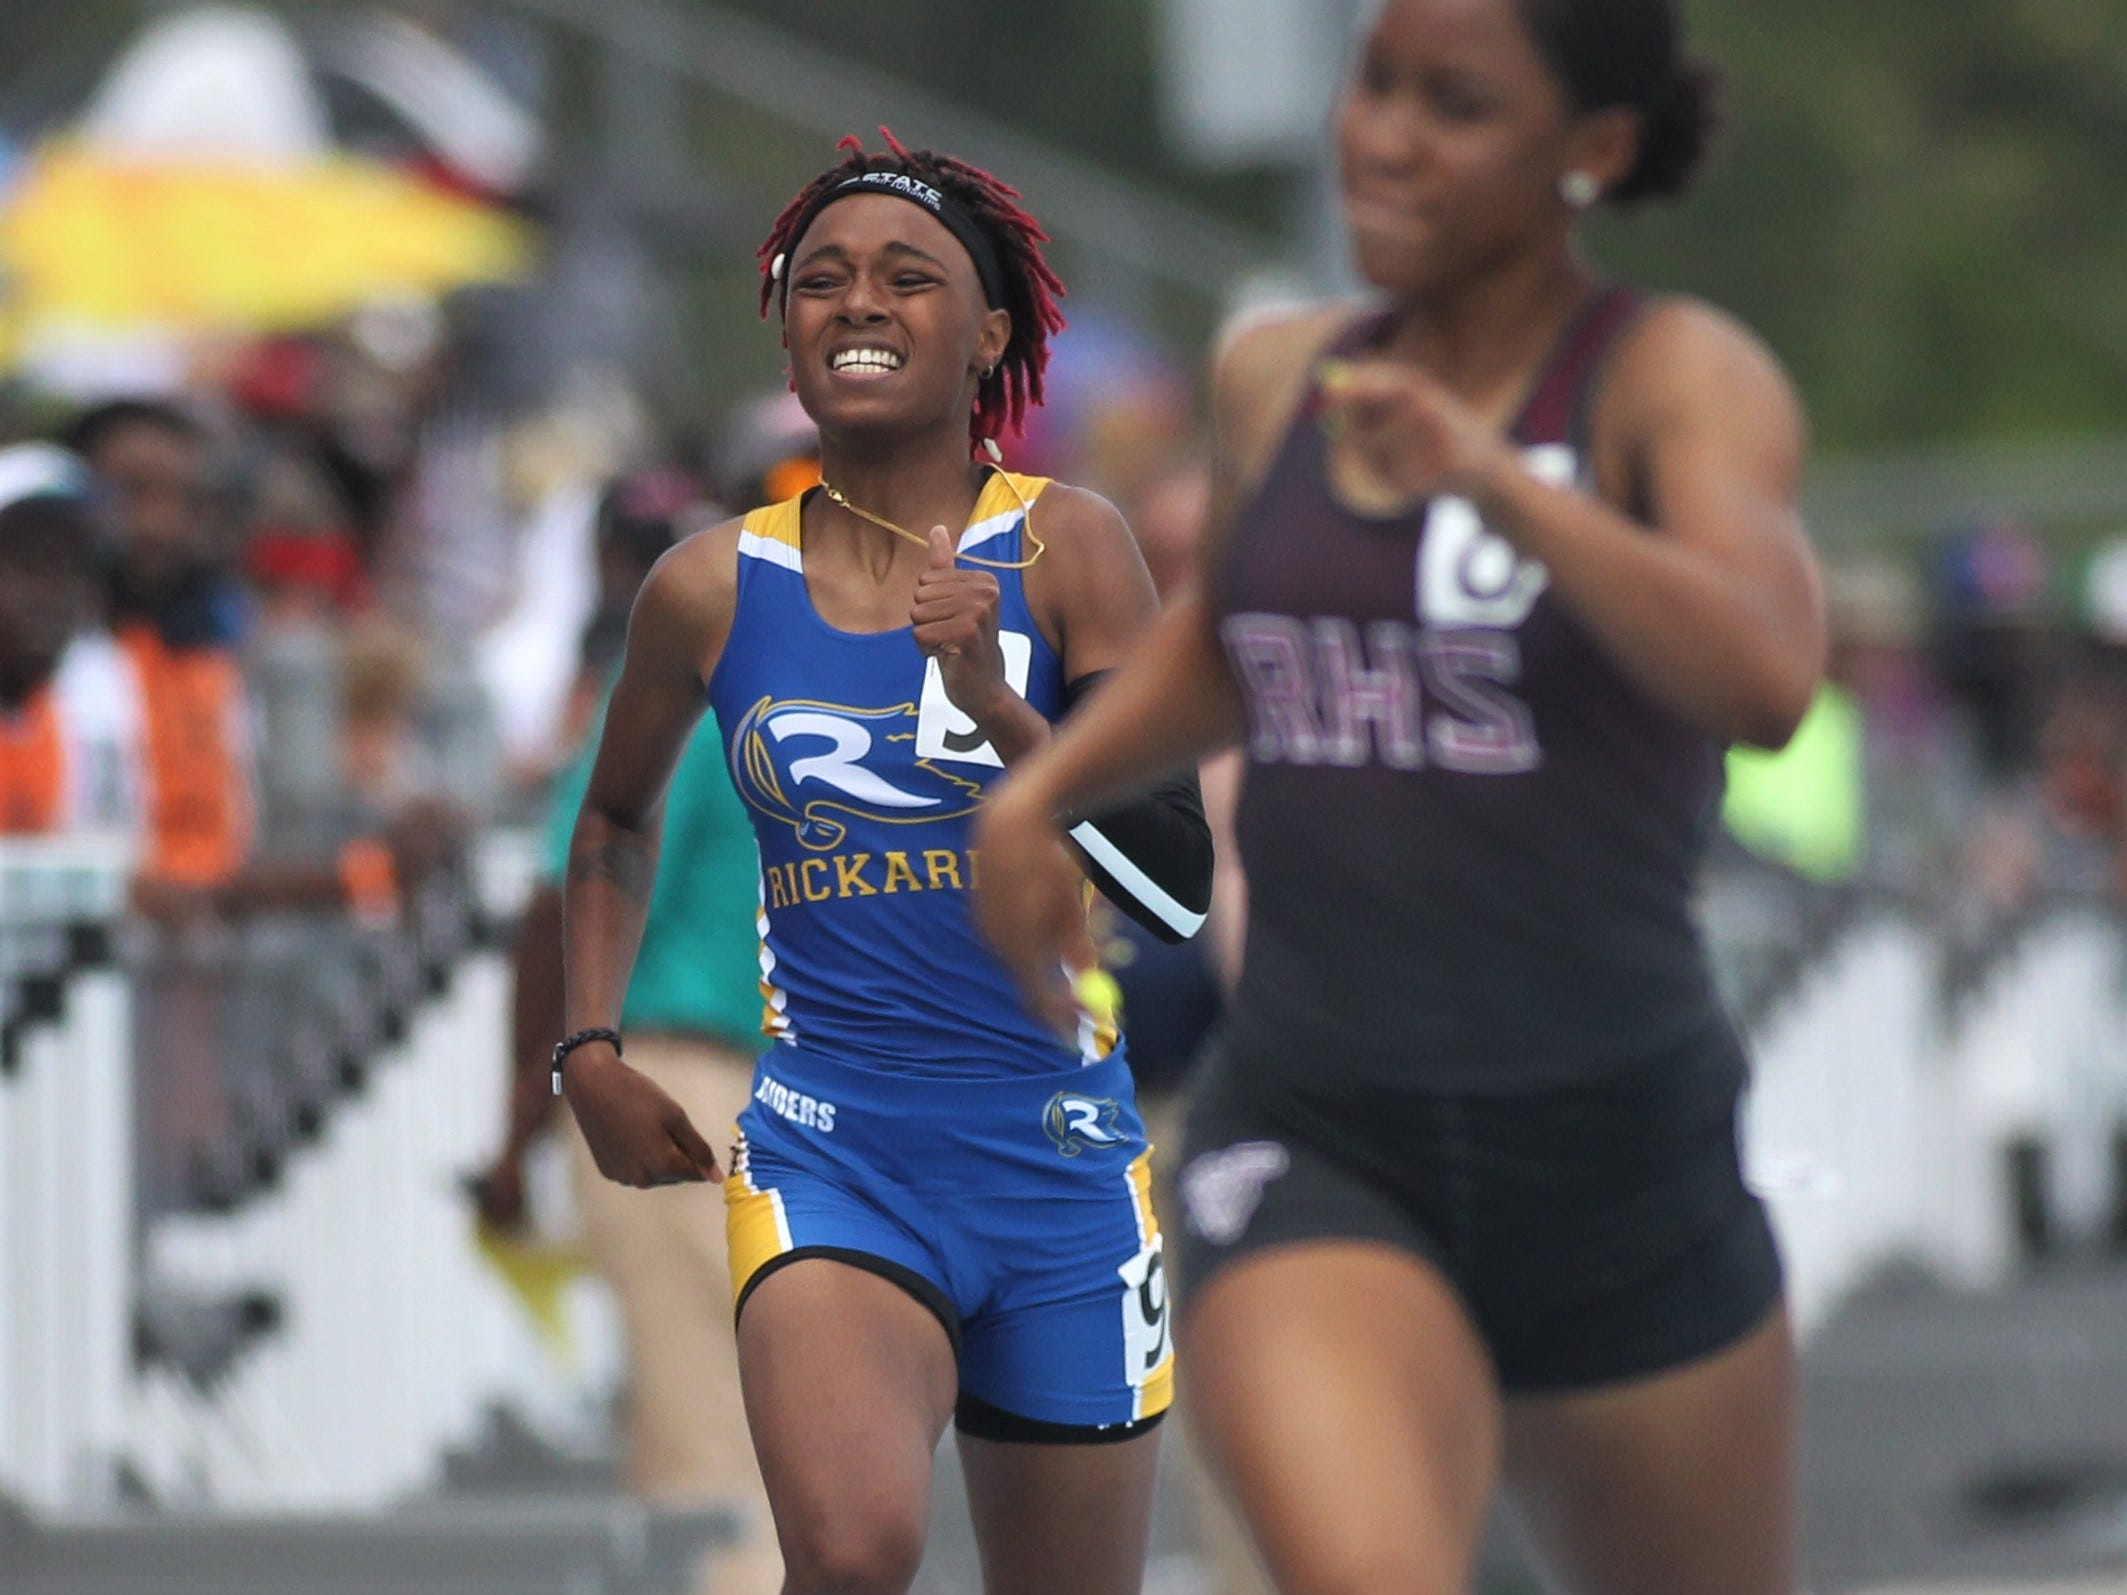 Rickards junior Kiarra Jordan took sixth in the Class 2A 400m dash the FHSAA Track and Field State Championships at UNF's Hodges Stadium in Jacksonville on May 4, 2019.